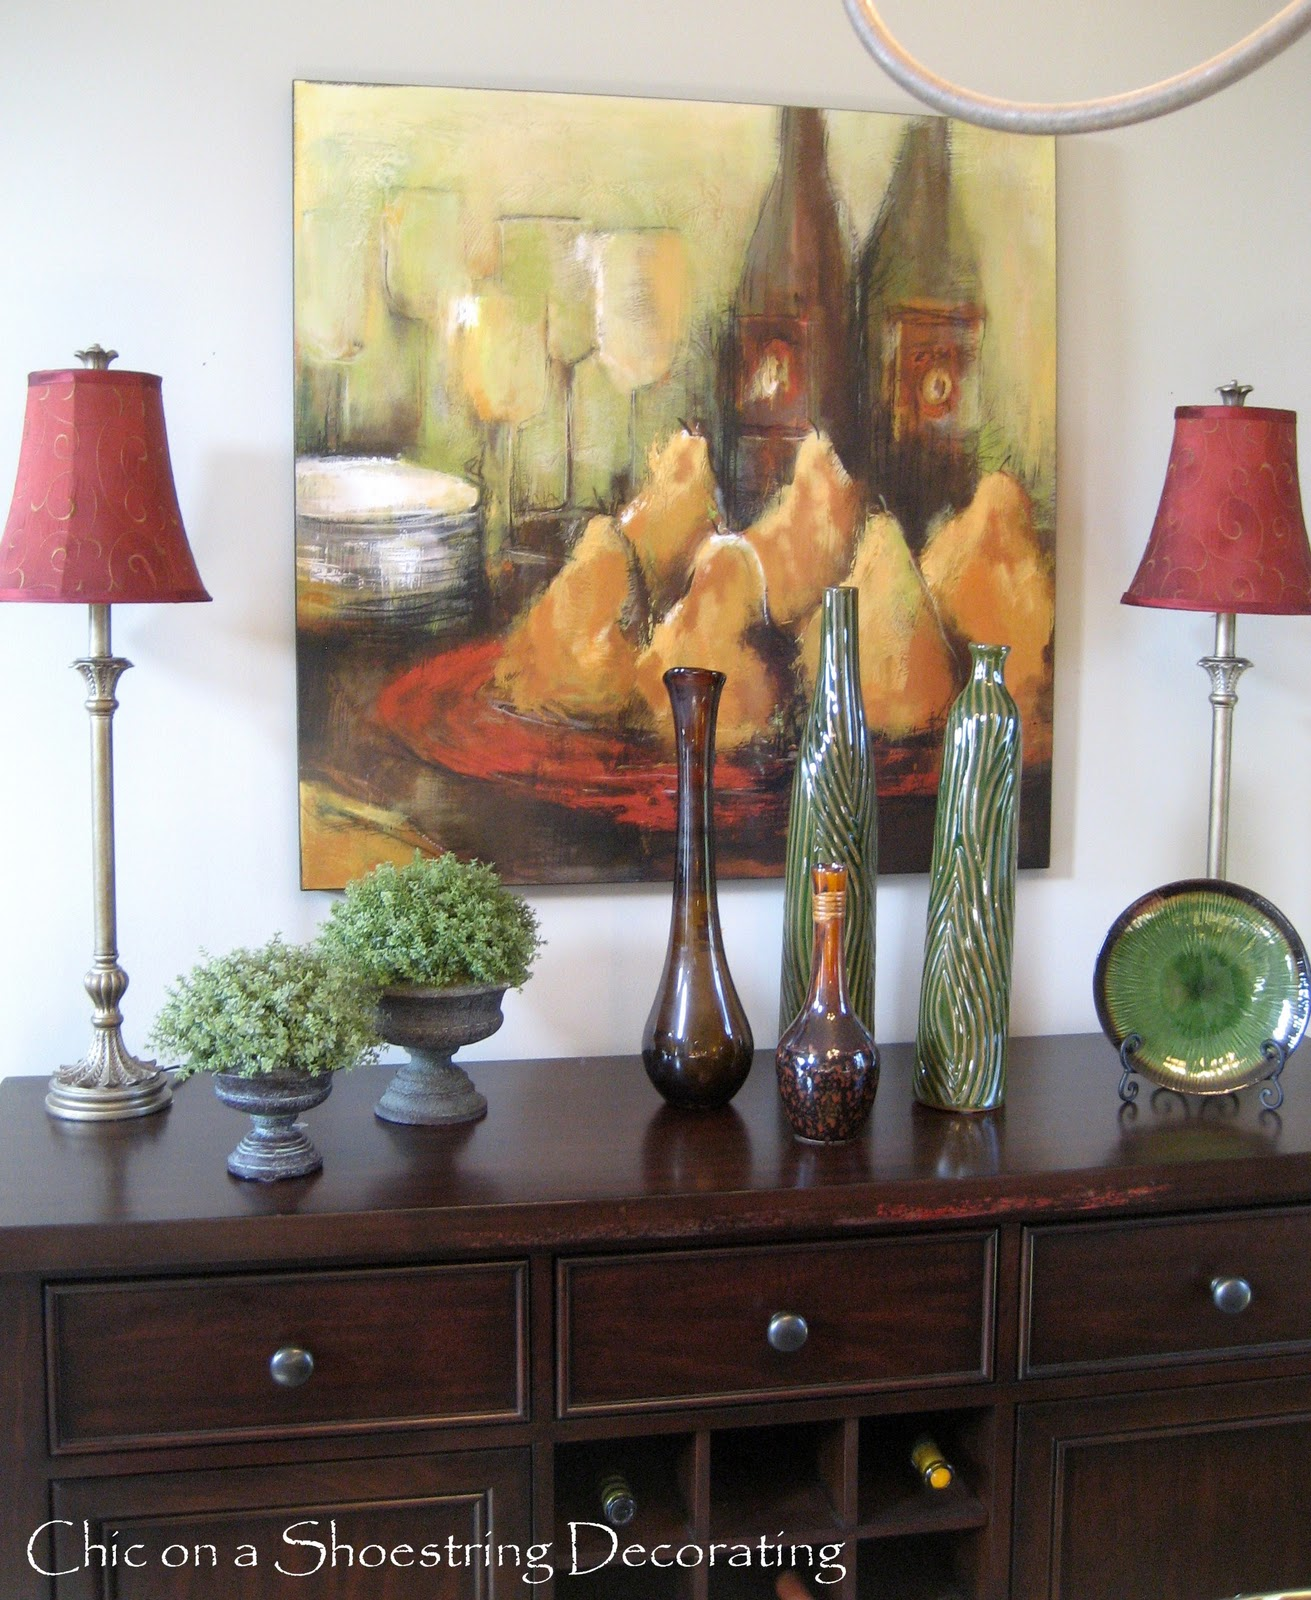 Chic on a shoestring decorating dining room buffet revisited for Decorate my dining room